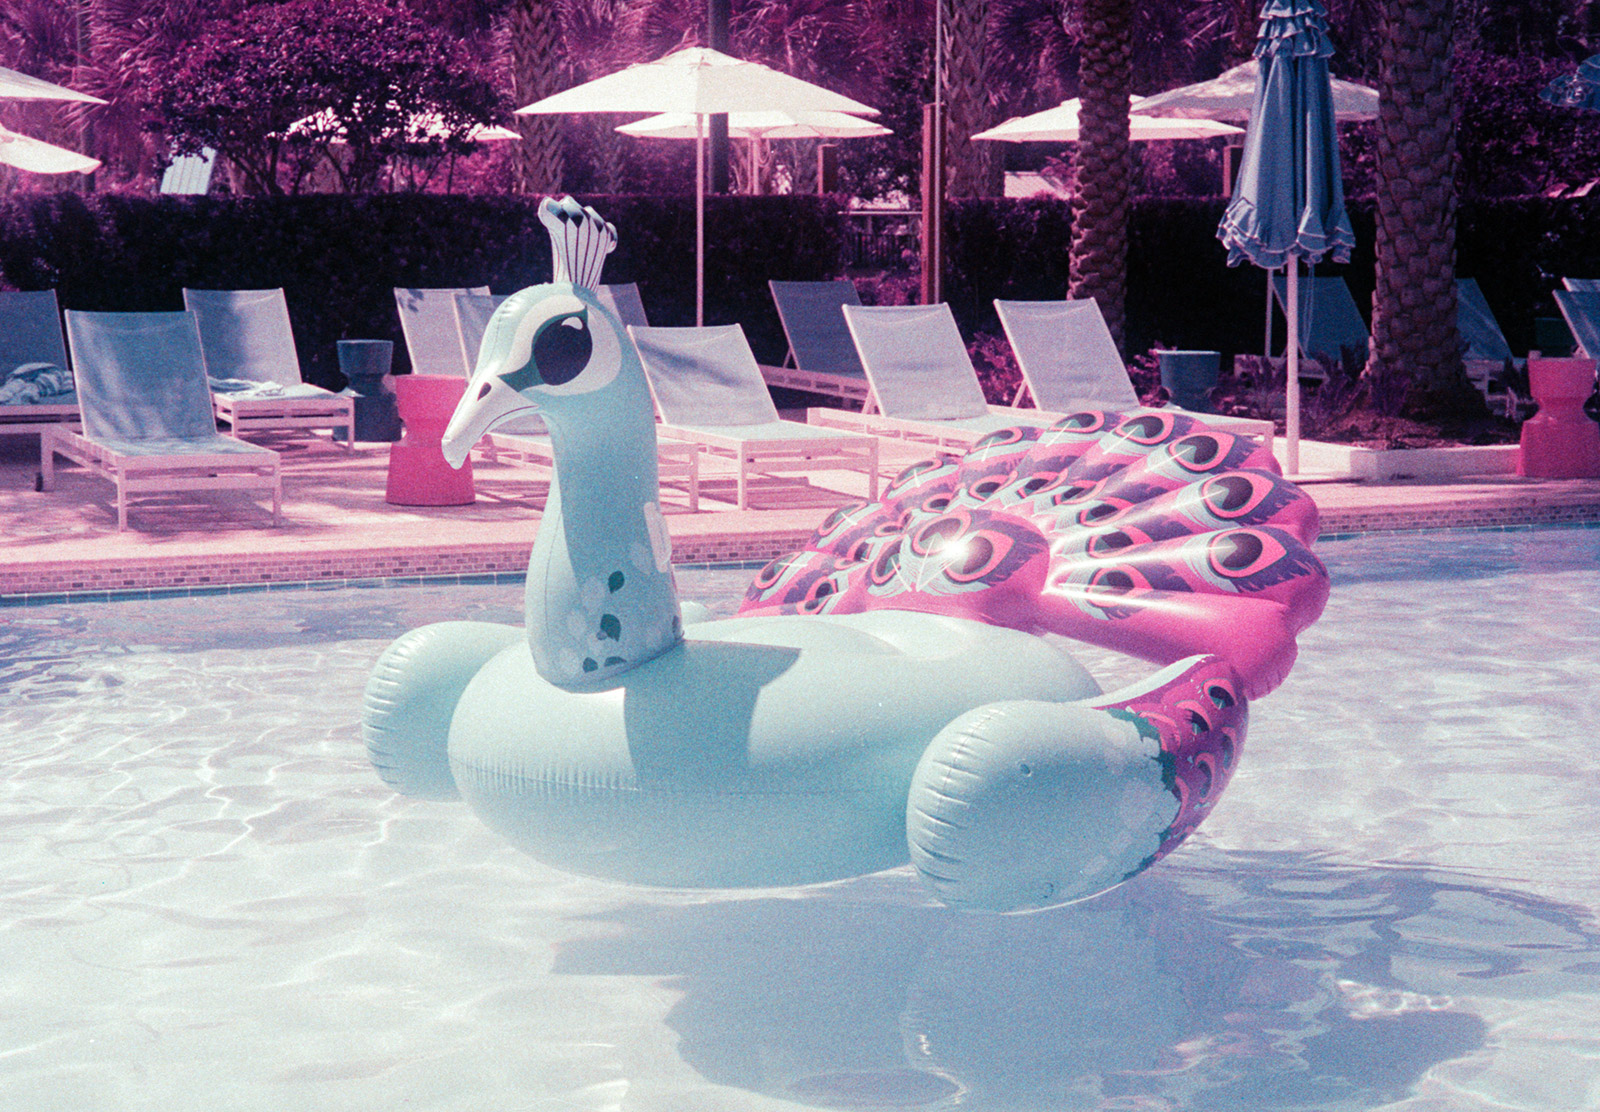 Inflatable peacock in pool